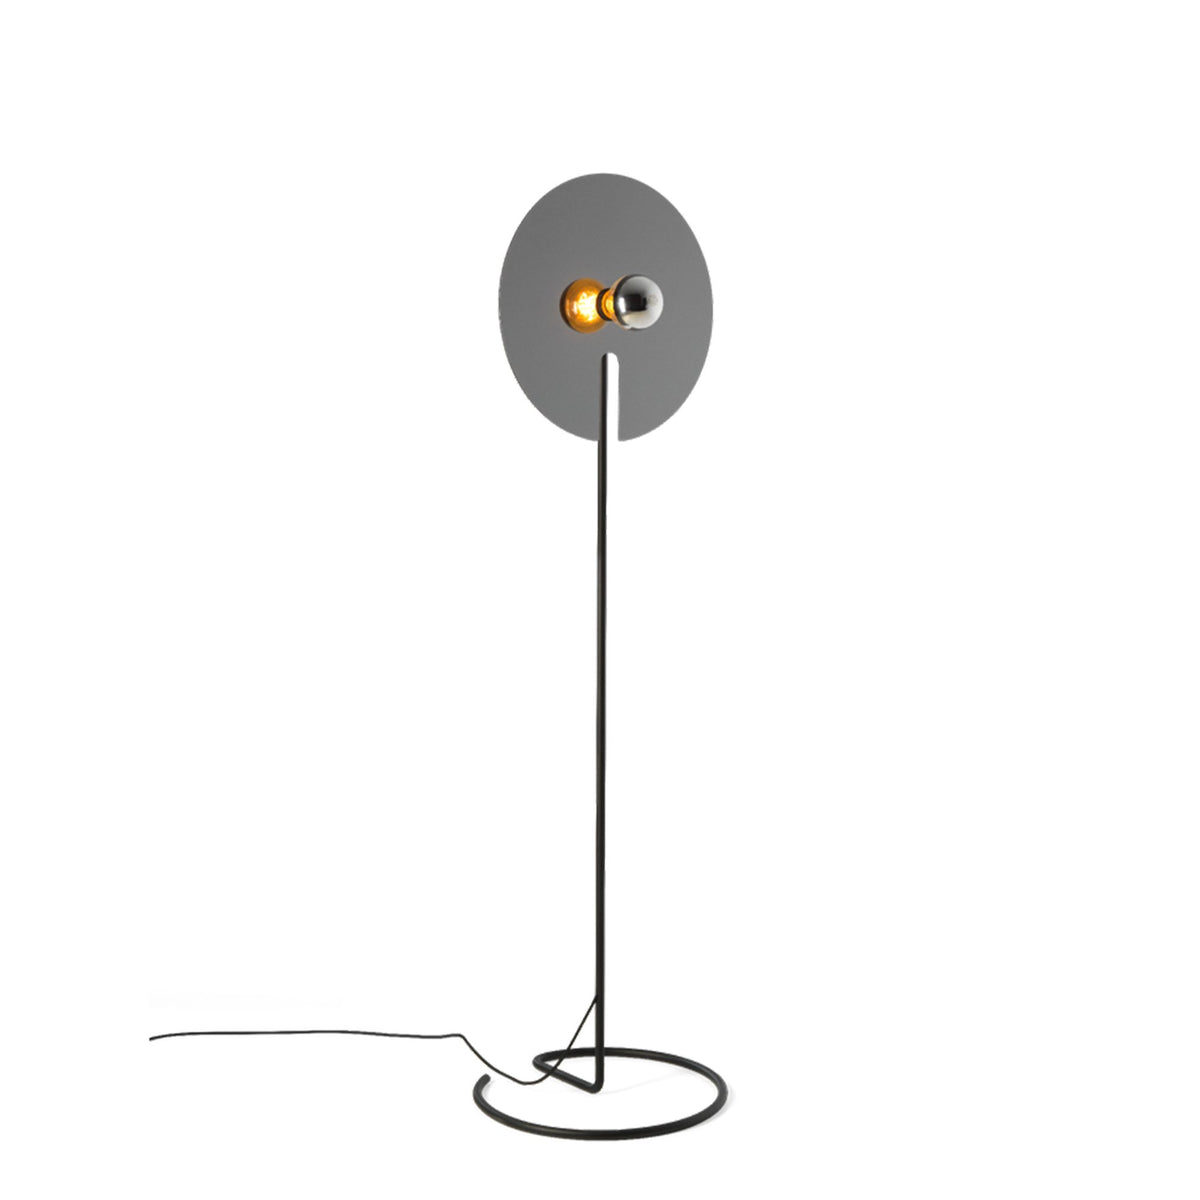 Wever&Ducre Mirro Floor Lamp Black Chrome Mirro 2.0